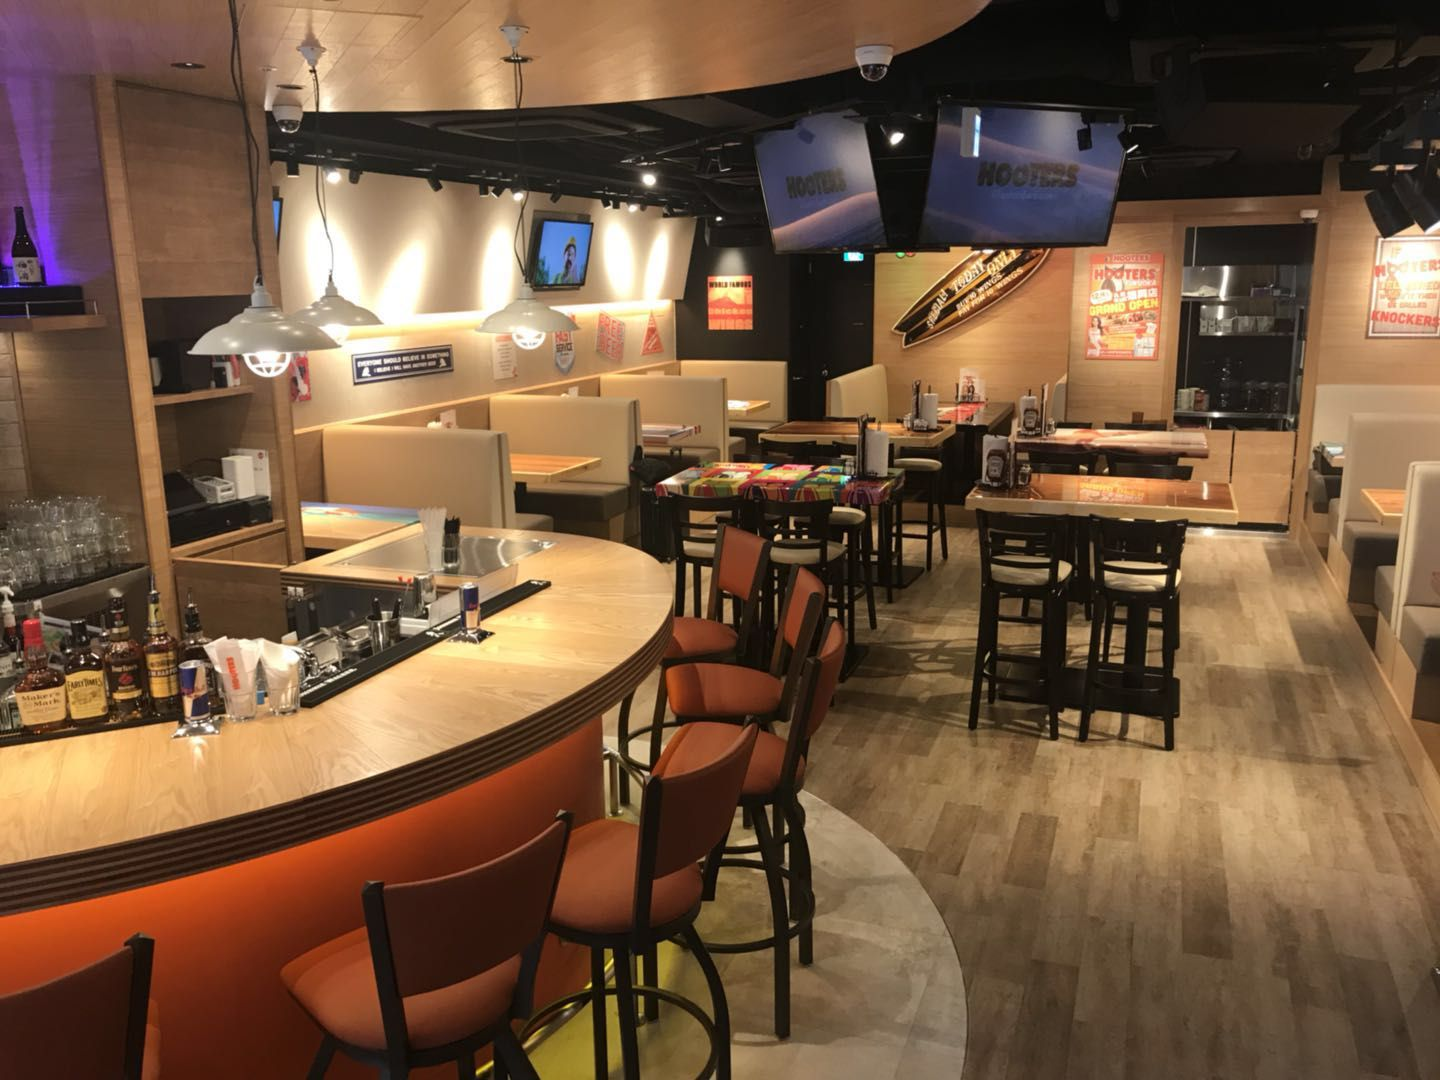 Hooters Continues Growth in Japan with Fukuoka Location